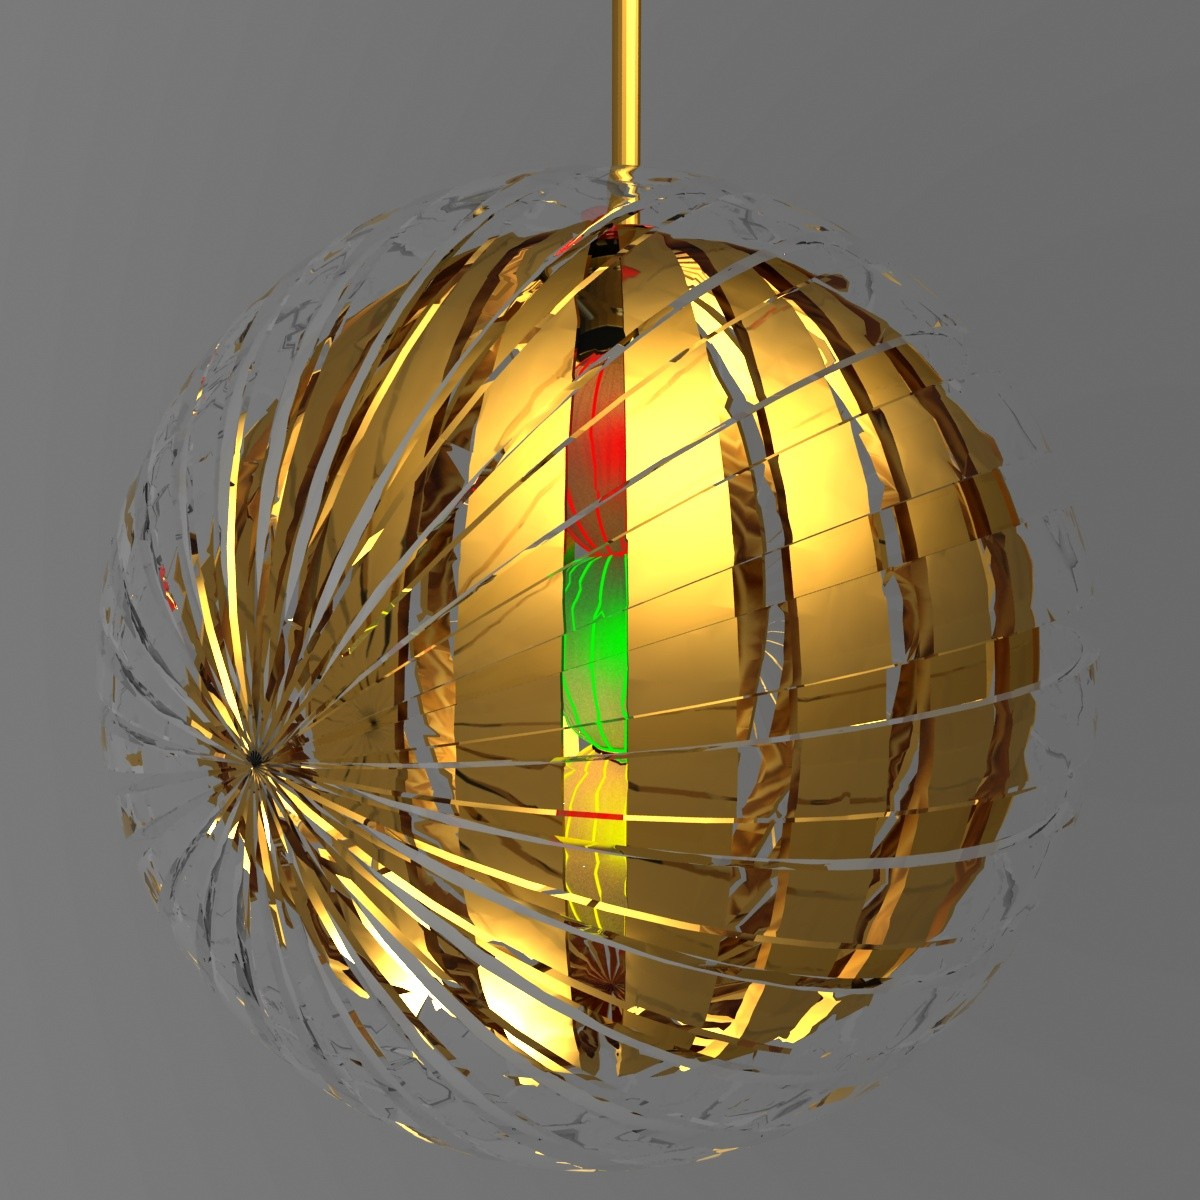 sphere_pattern_lamp1.jpg